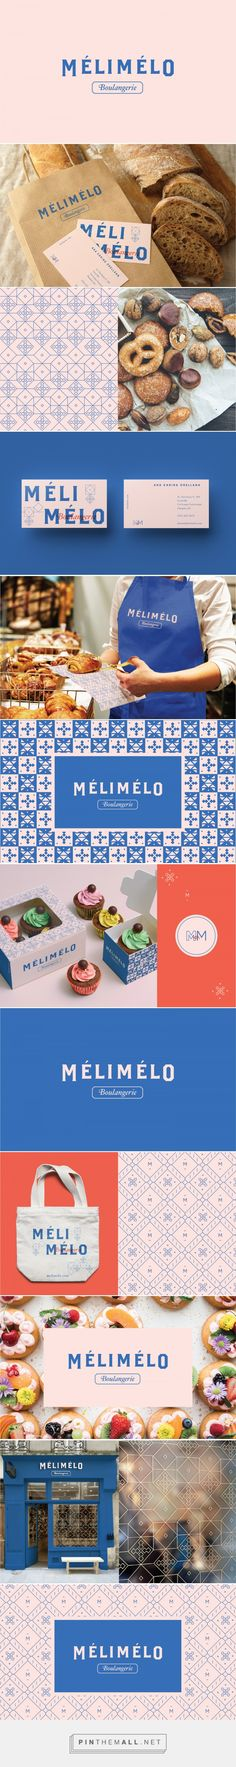 Mélimélo Bakery Branding by Daniela Arcila | Fivestar Branding Agency – Design and Branding Agency & Curated Inspiration Gallery #bakery #bakerybranding #branding #brandinginspiration #branddesign #brandidentity #packaging #package #design #dribbble #behance #pinterest